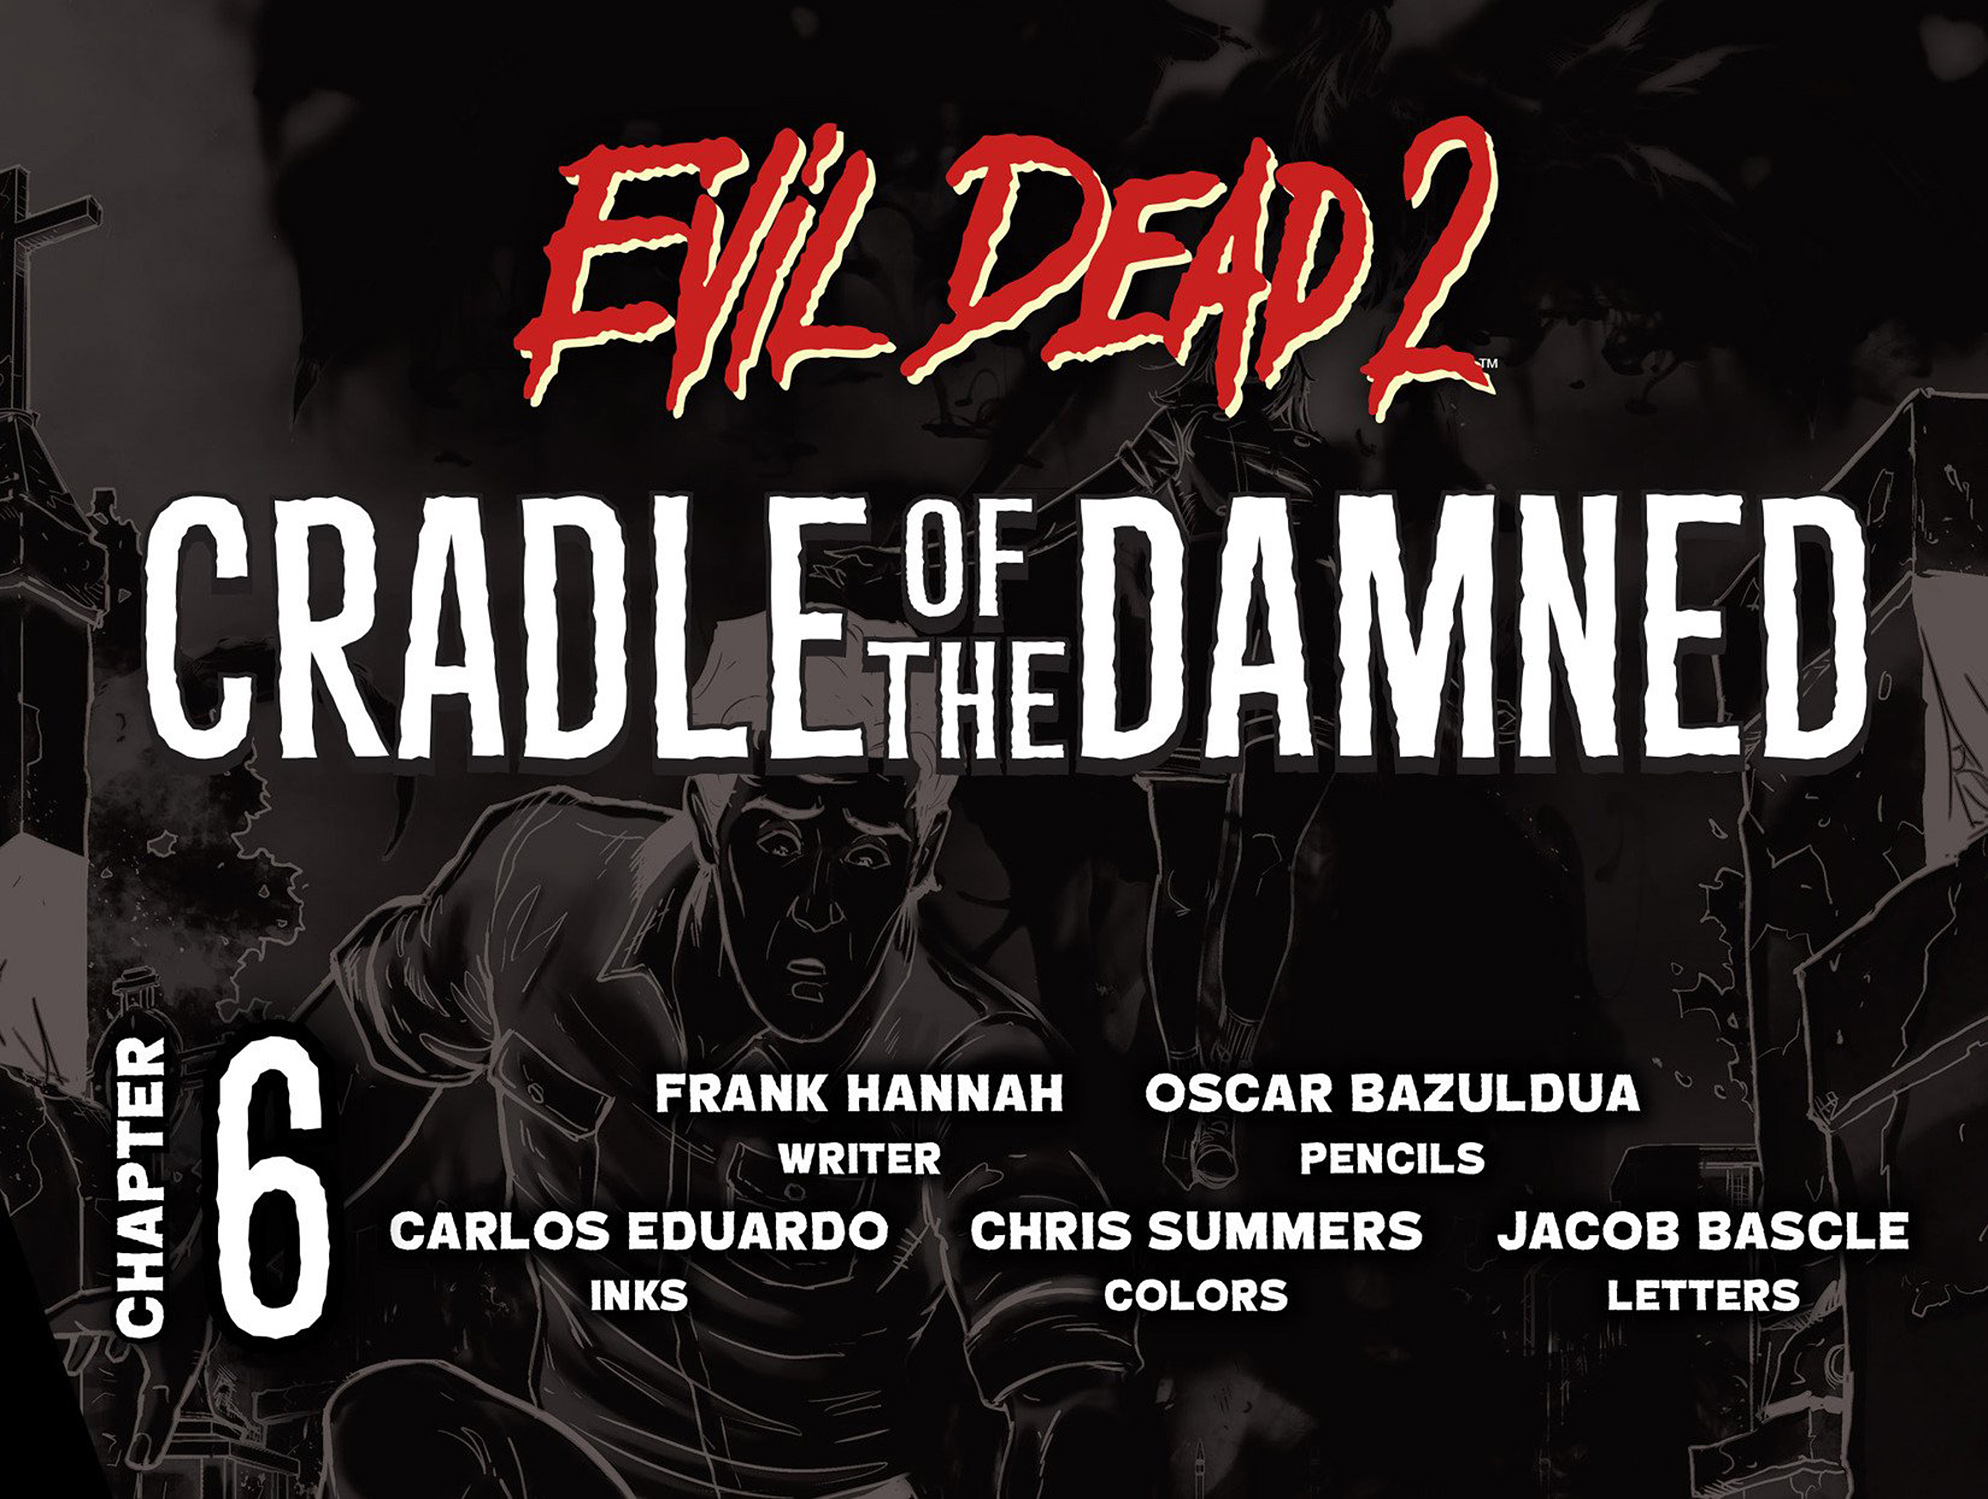 Read online Evil Dead 2: Cradle of the Damned comic -  Issue #6 - 2